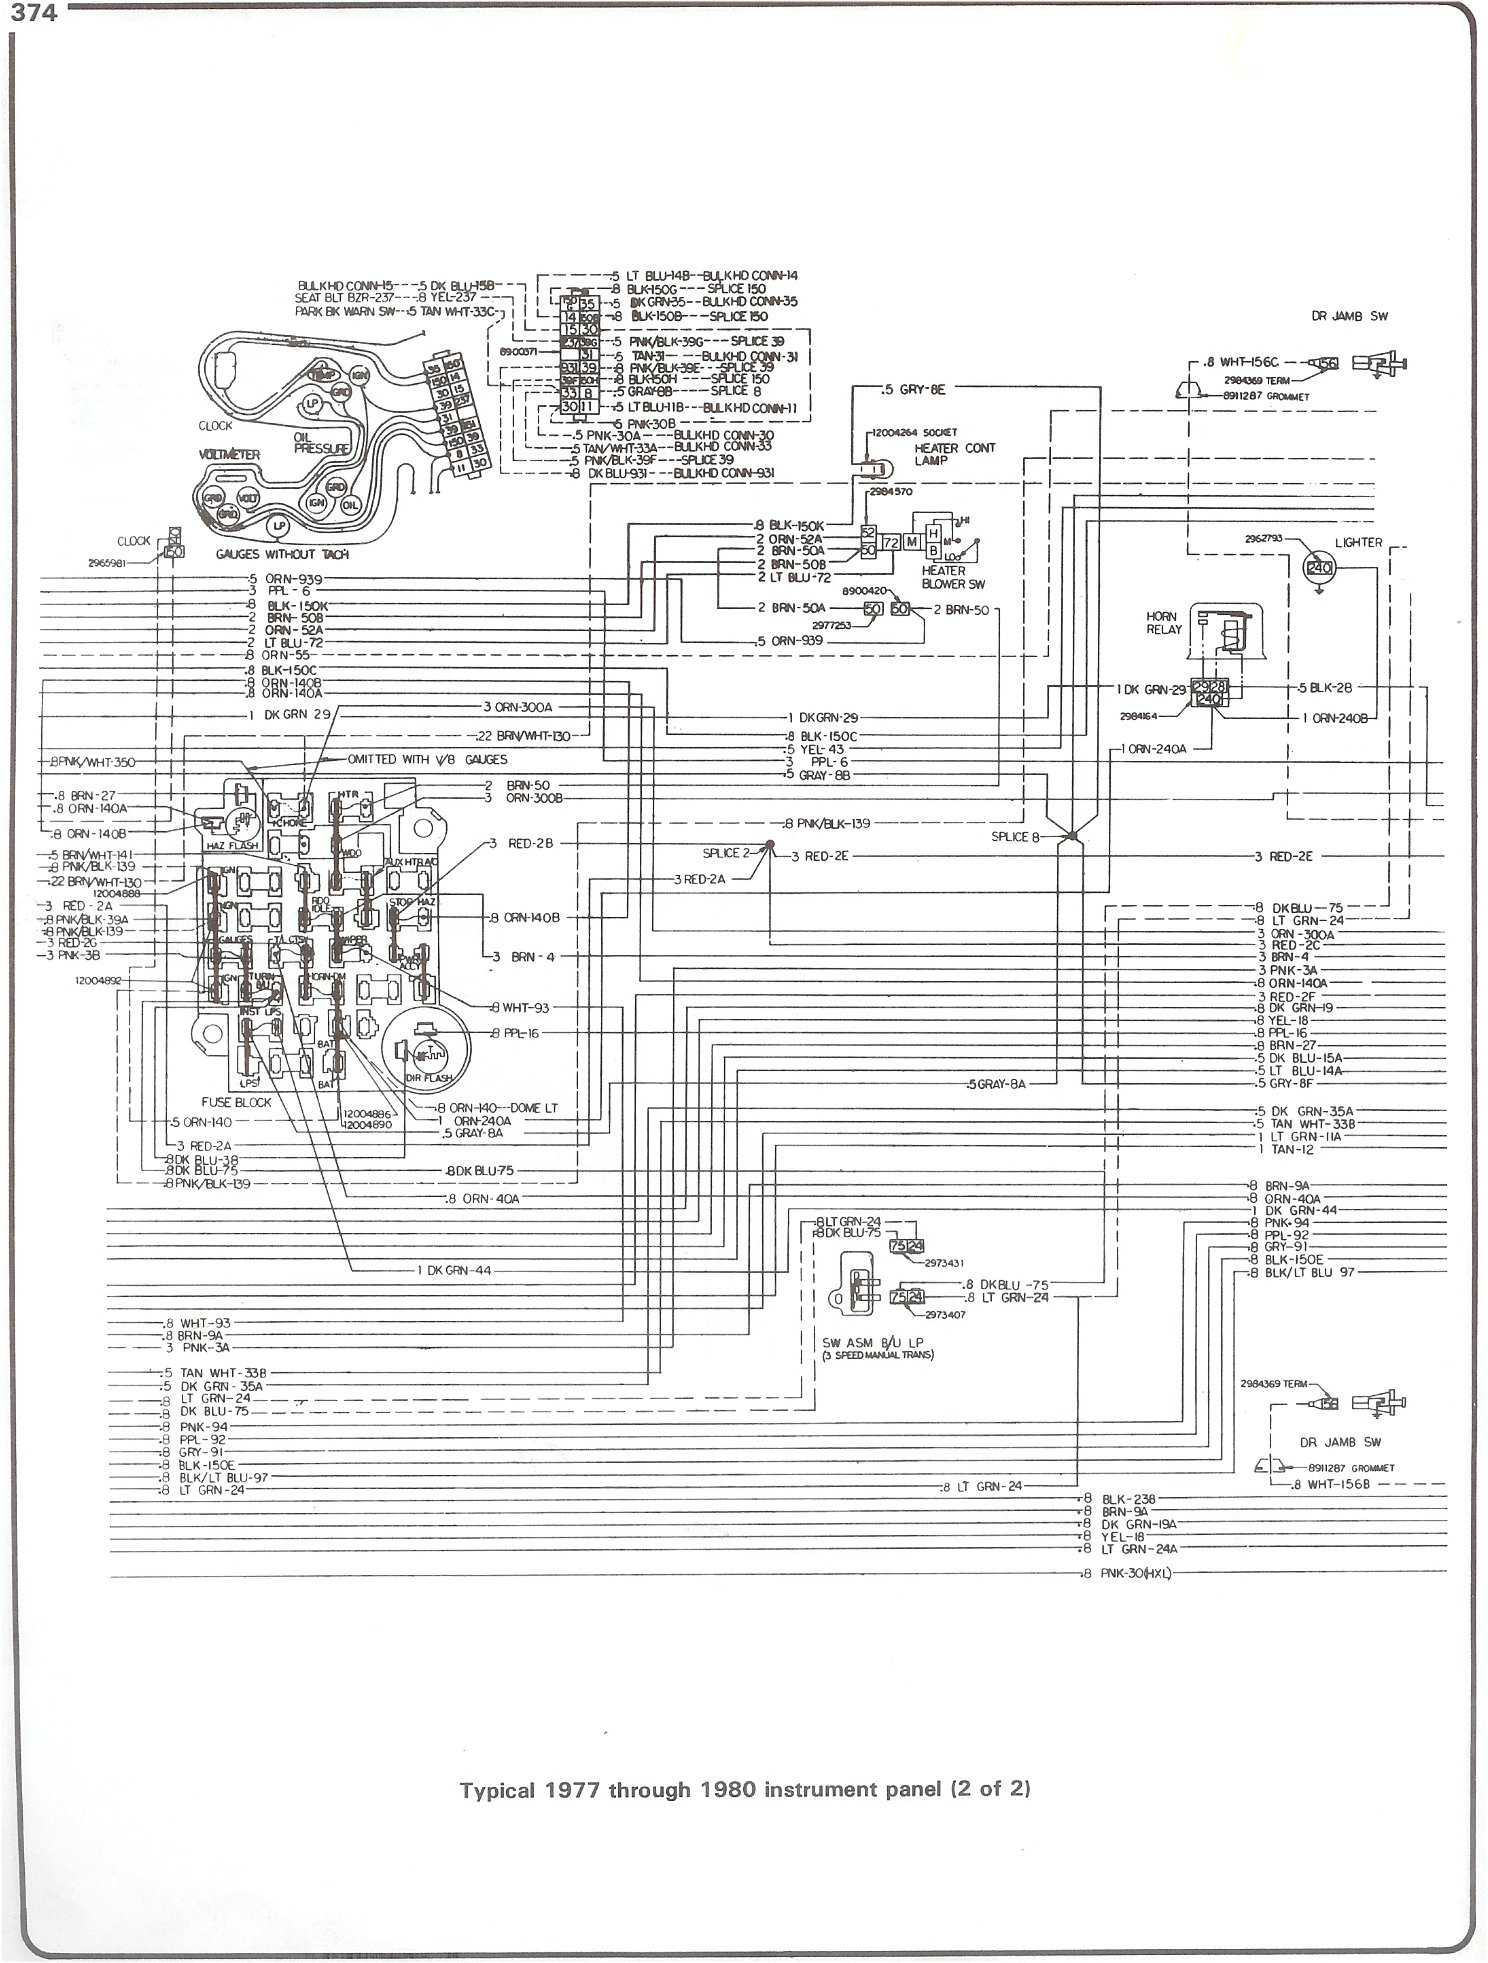 1986 gmc c15 wiring diagram auto electrical wiring diagram complete 73 87 wiring diagrams rh forum 73 87chevytrucks com c15 fuel pressure diagram bsa c15 wiring diagram cheapraybanclubmaster Image collections